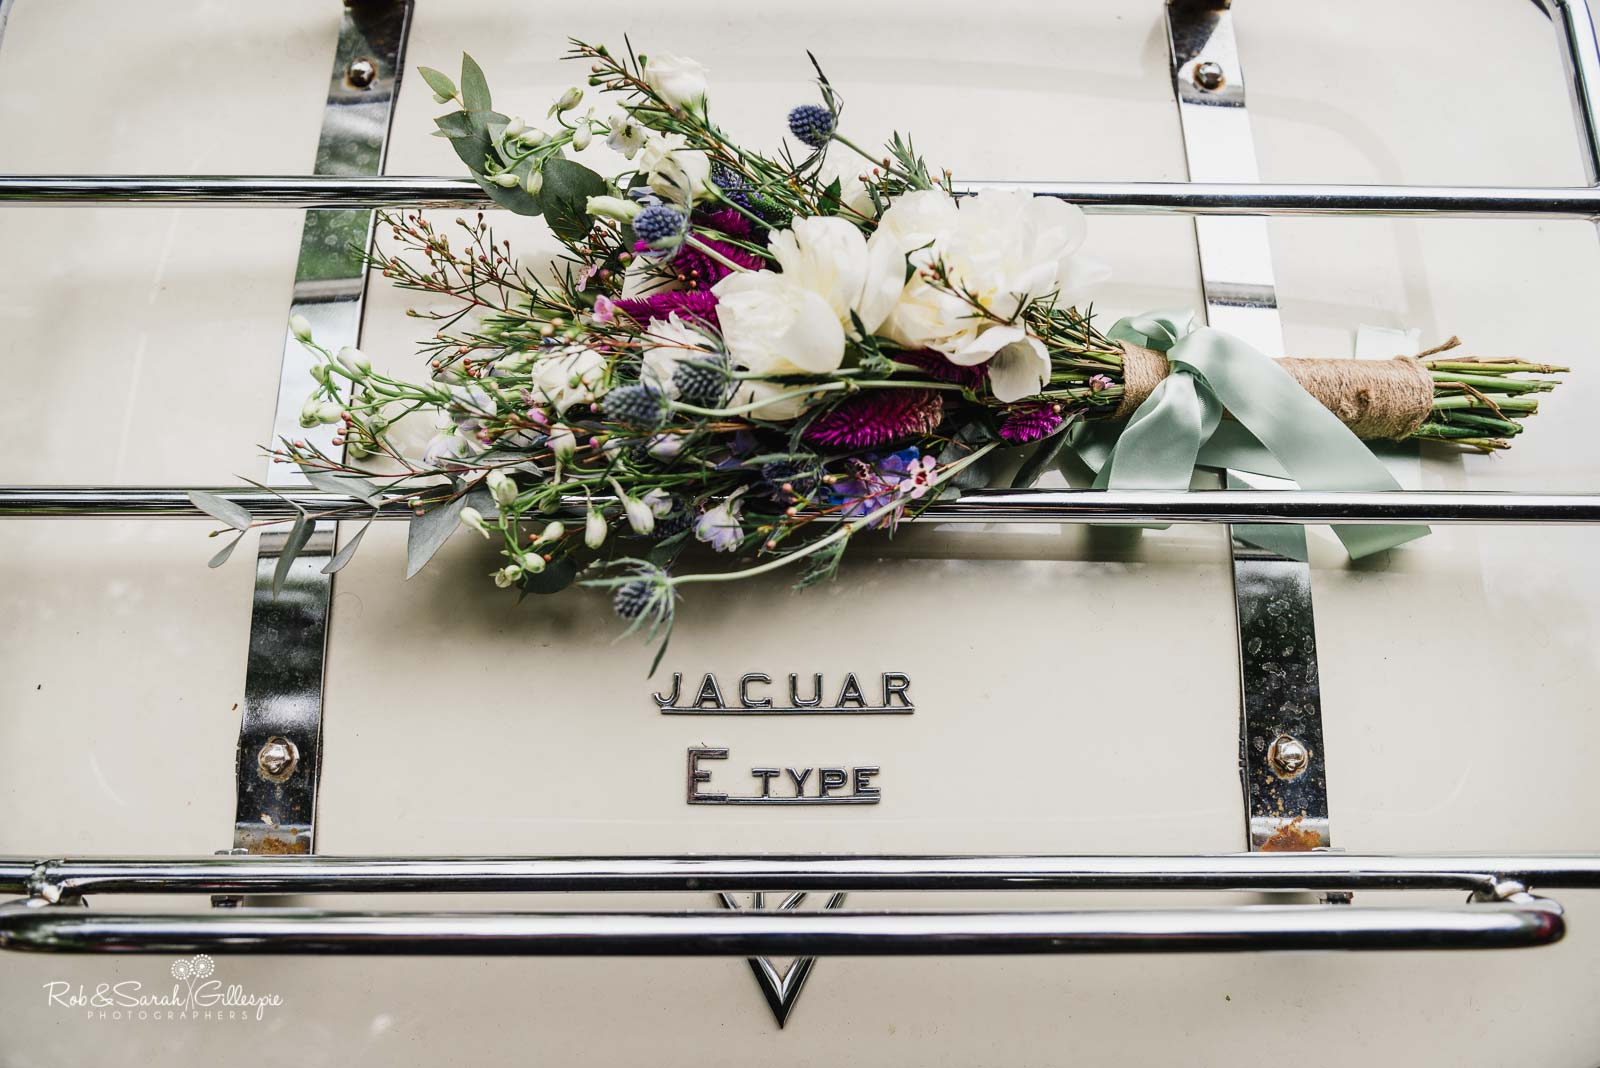 Bridal flowers on Jaguar E-Type